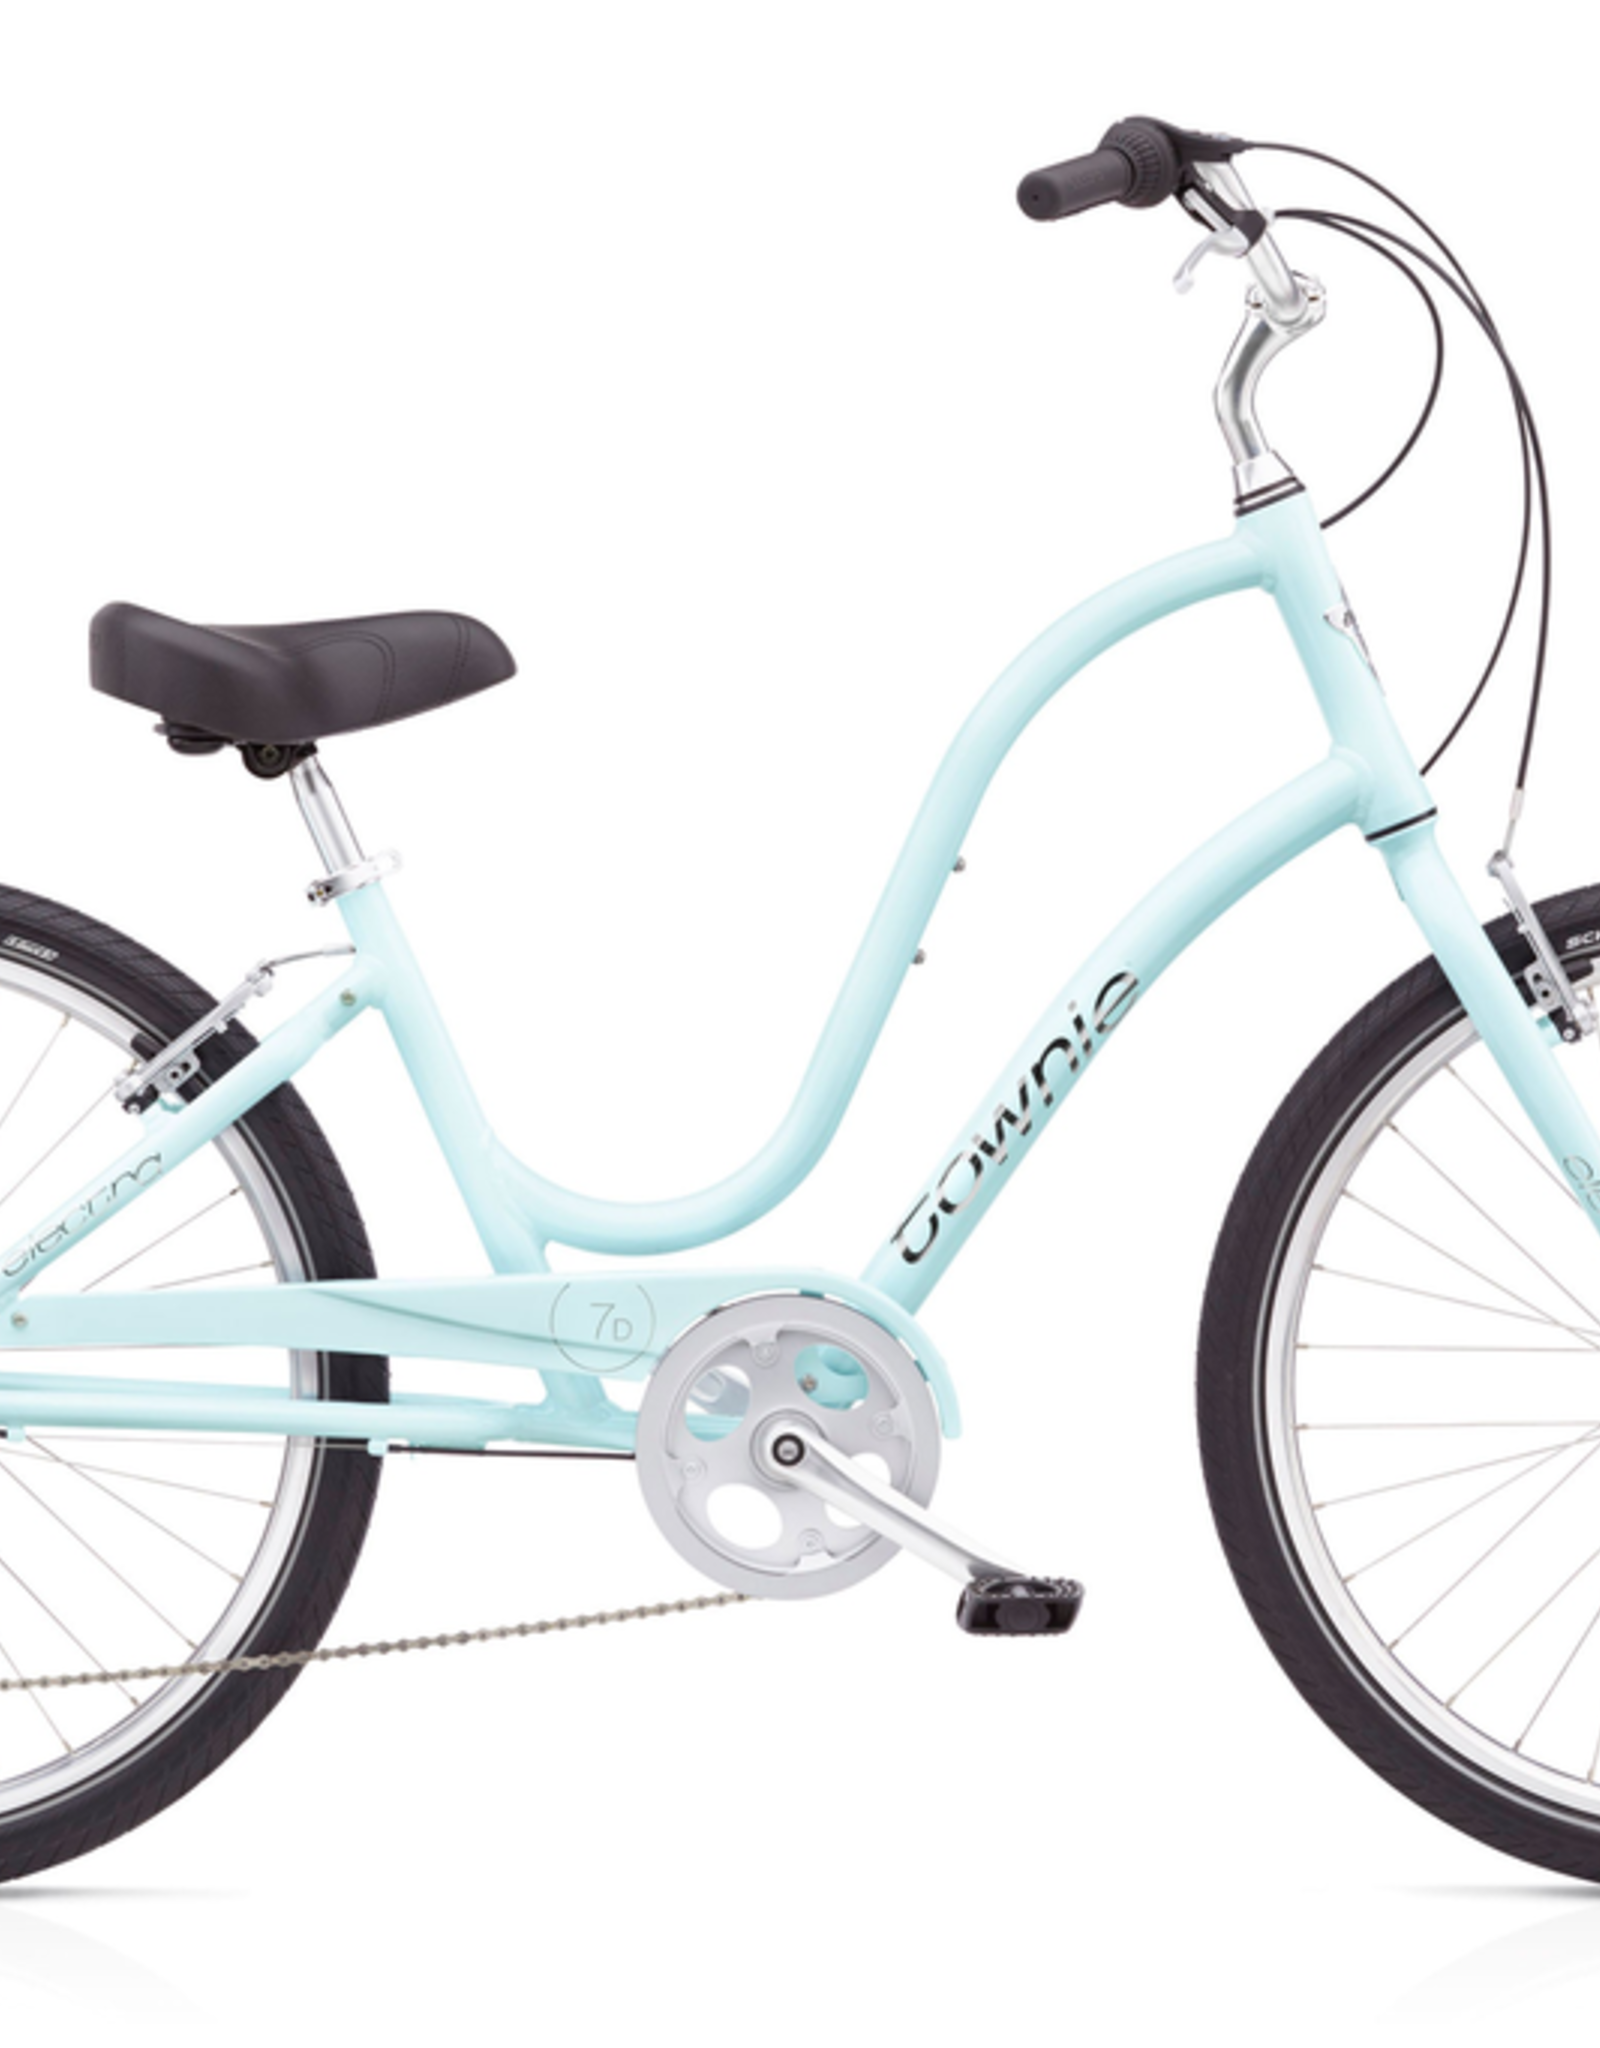 "Electra Electra Townie Original 7D, 24"", Ladies', Arctic Blue"